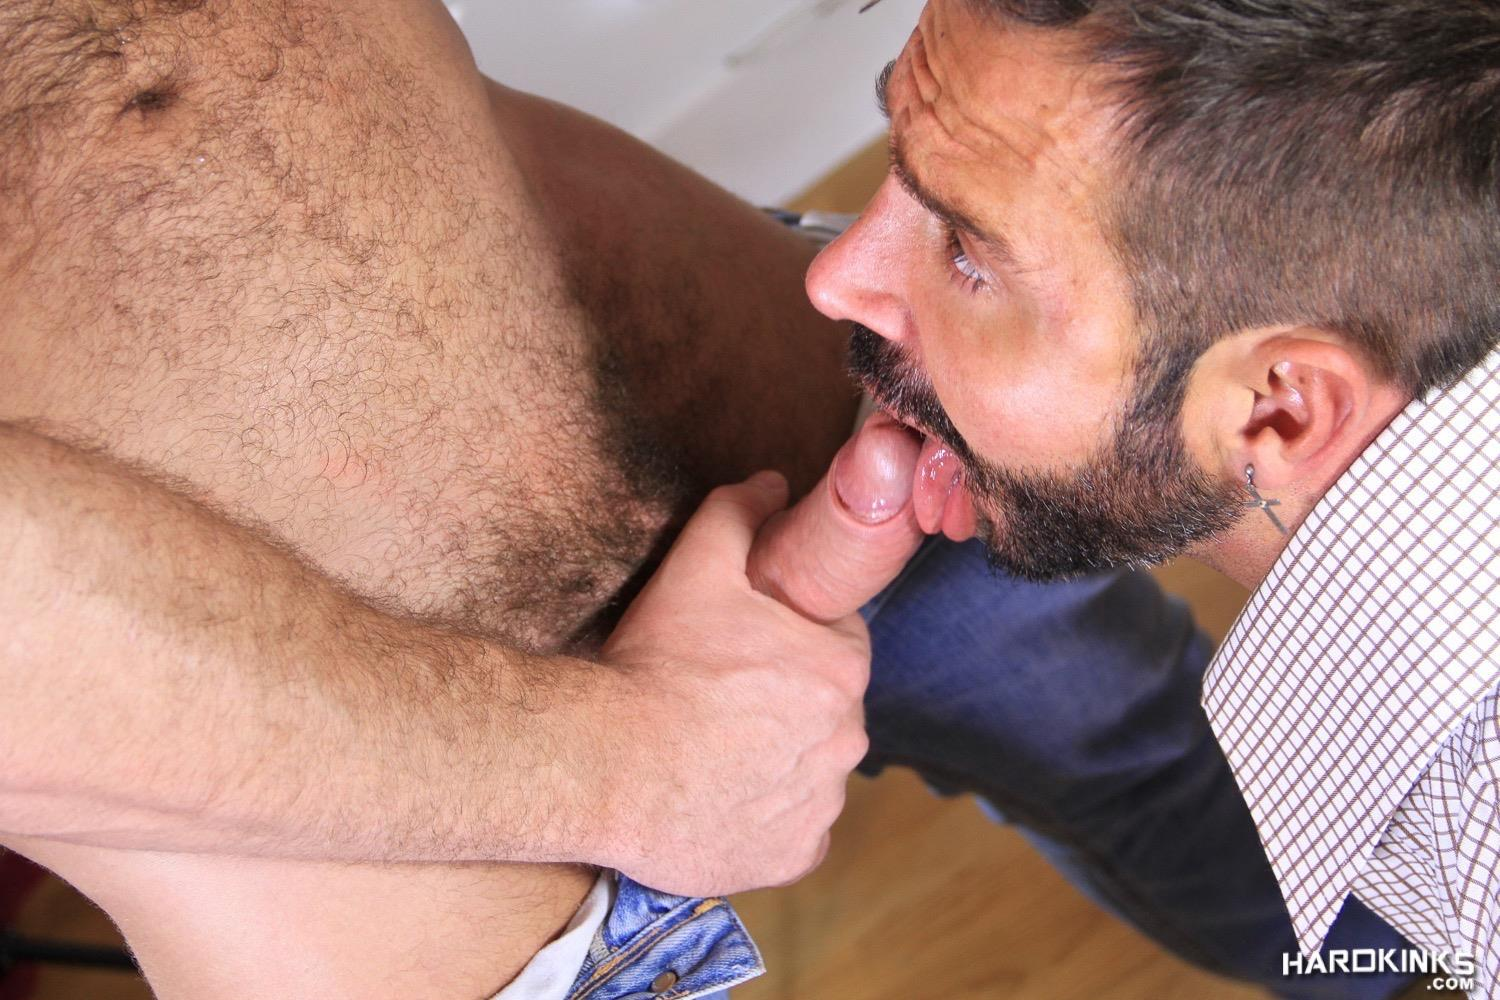 Hardkinks Jessy Ares and Martin Mazza Hairy Alpha Male Amateur Gay Porn 26